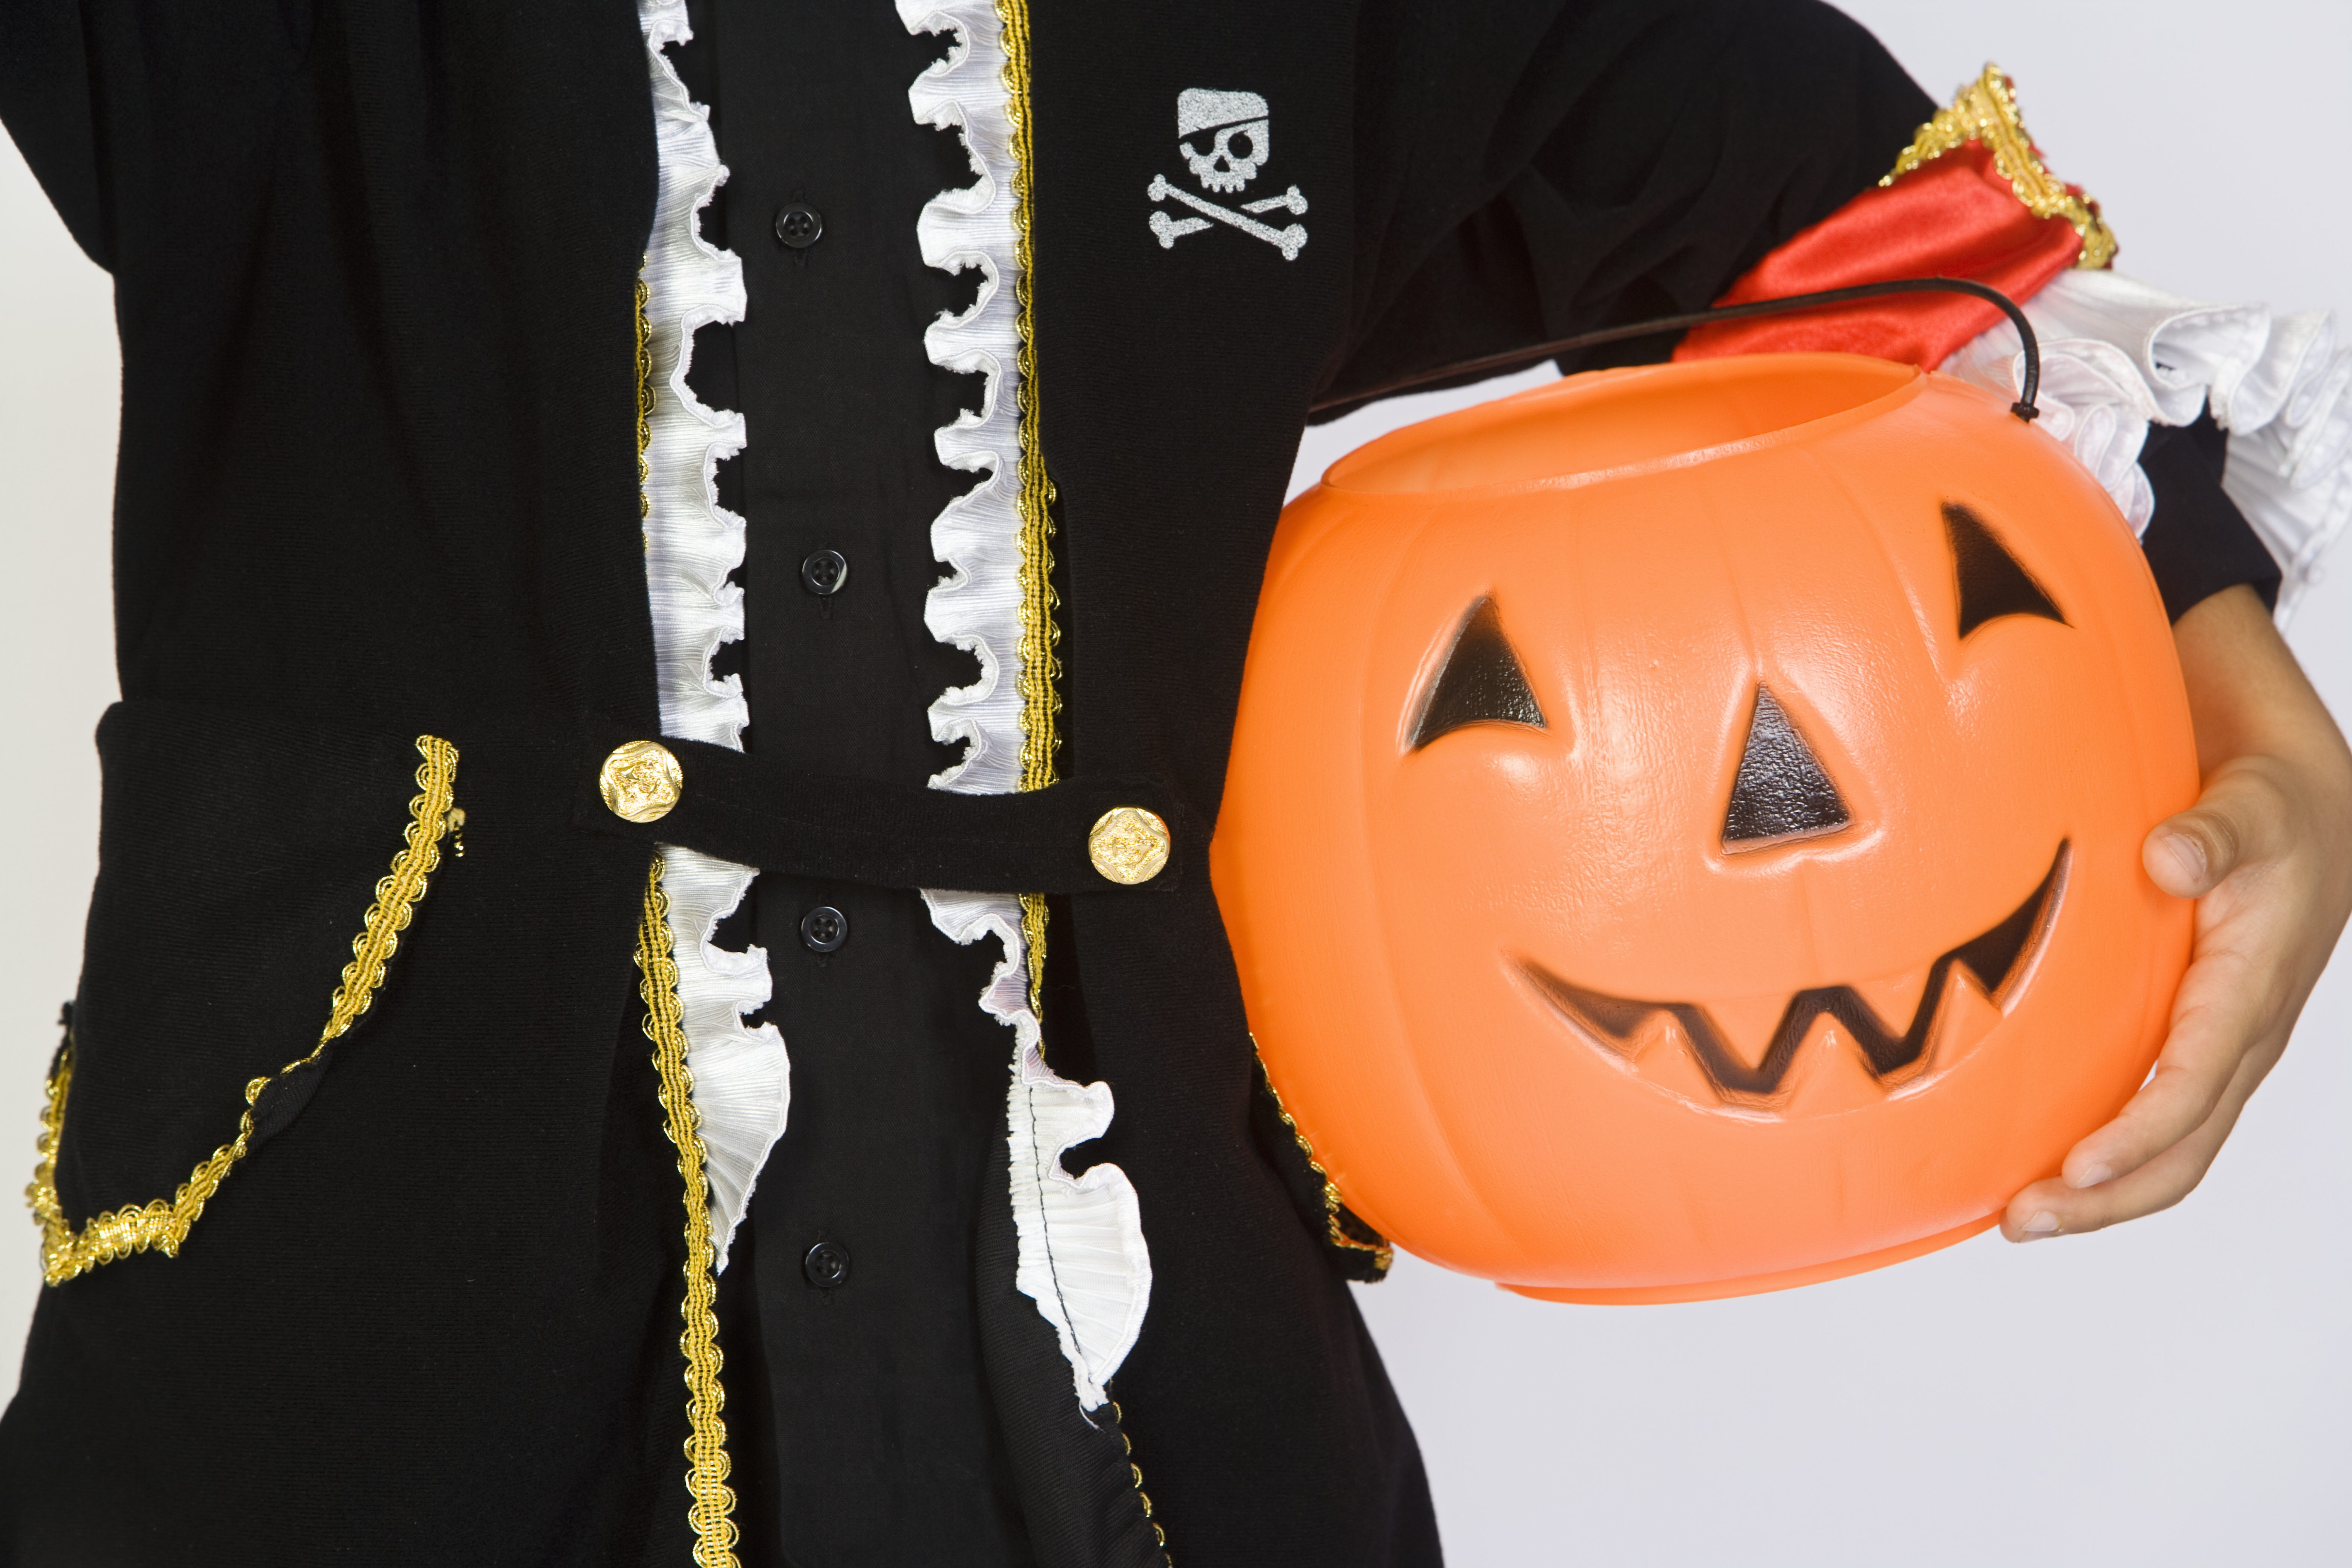 police investigating report of tampered halloween candy in cambridge